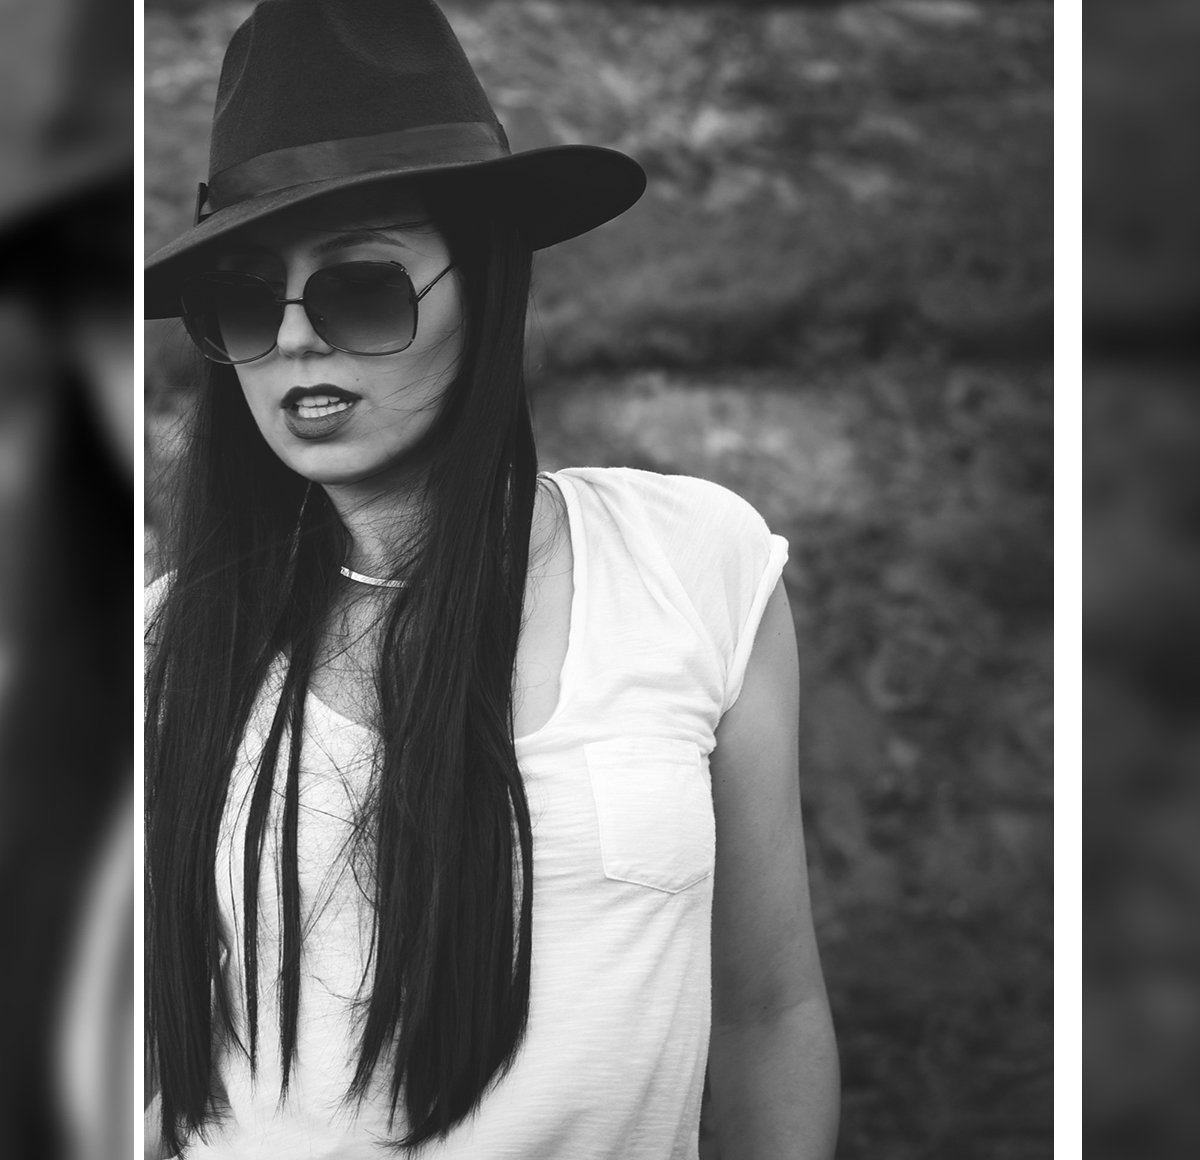 black-white-photography-model-fashion-blogger-long-sleek-straight-hair-hat-sunglasses-white-tshirt (2)